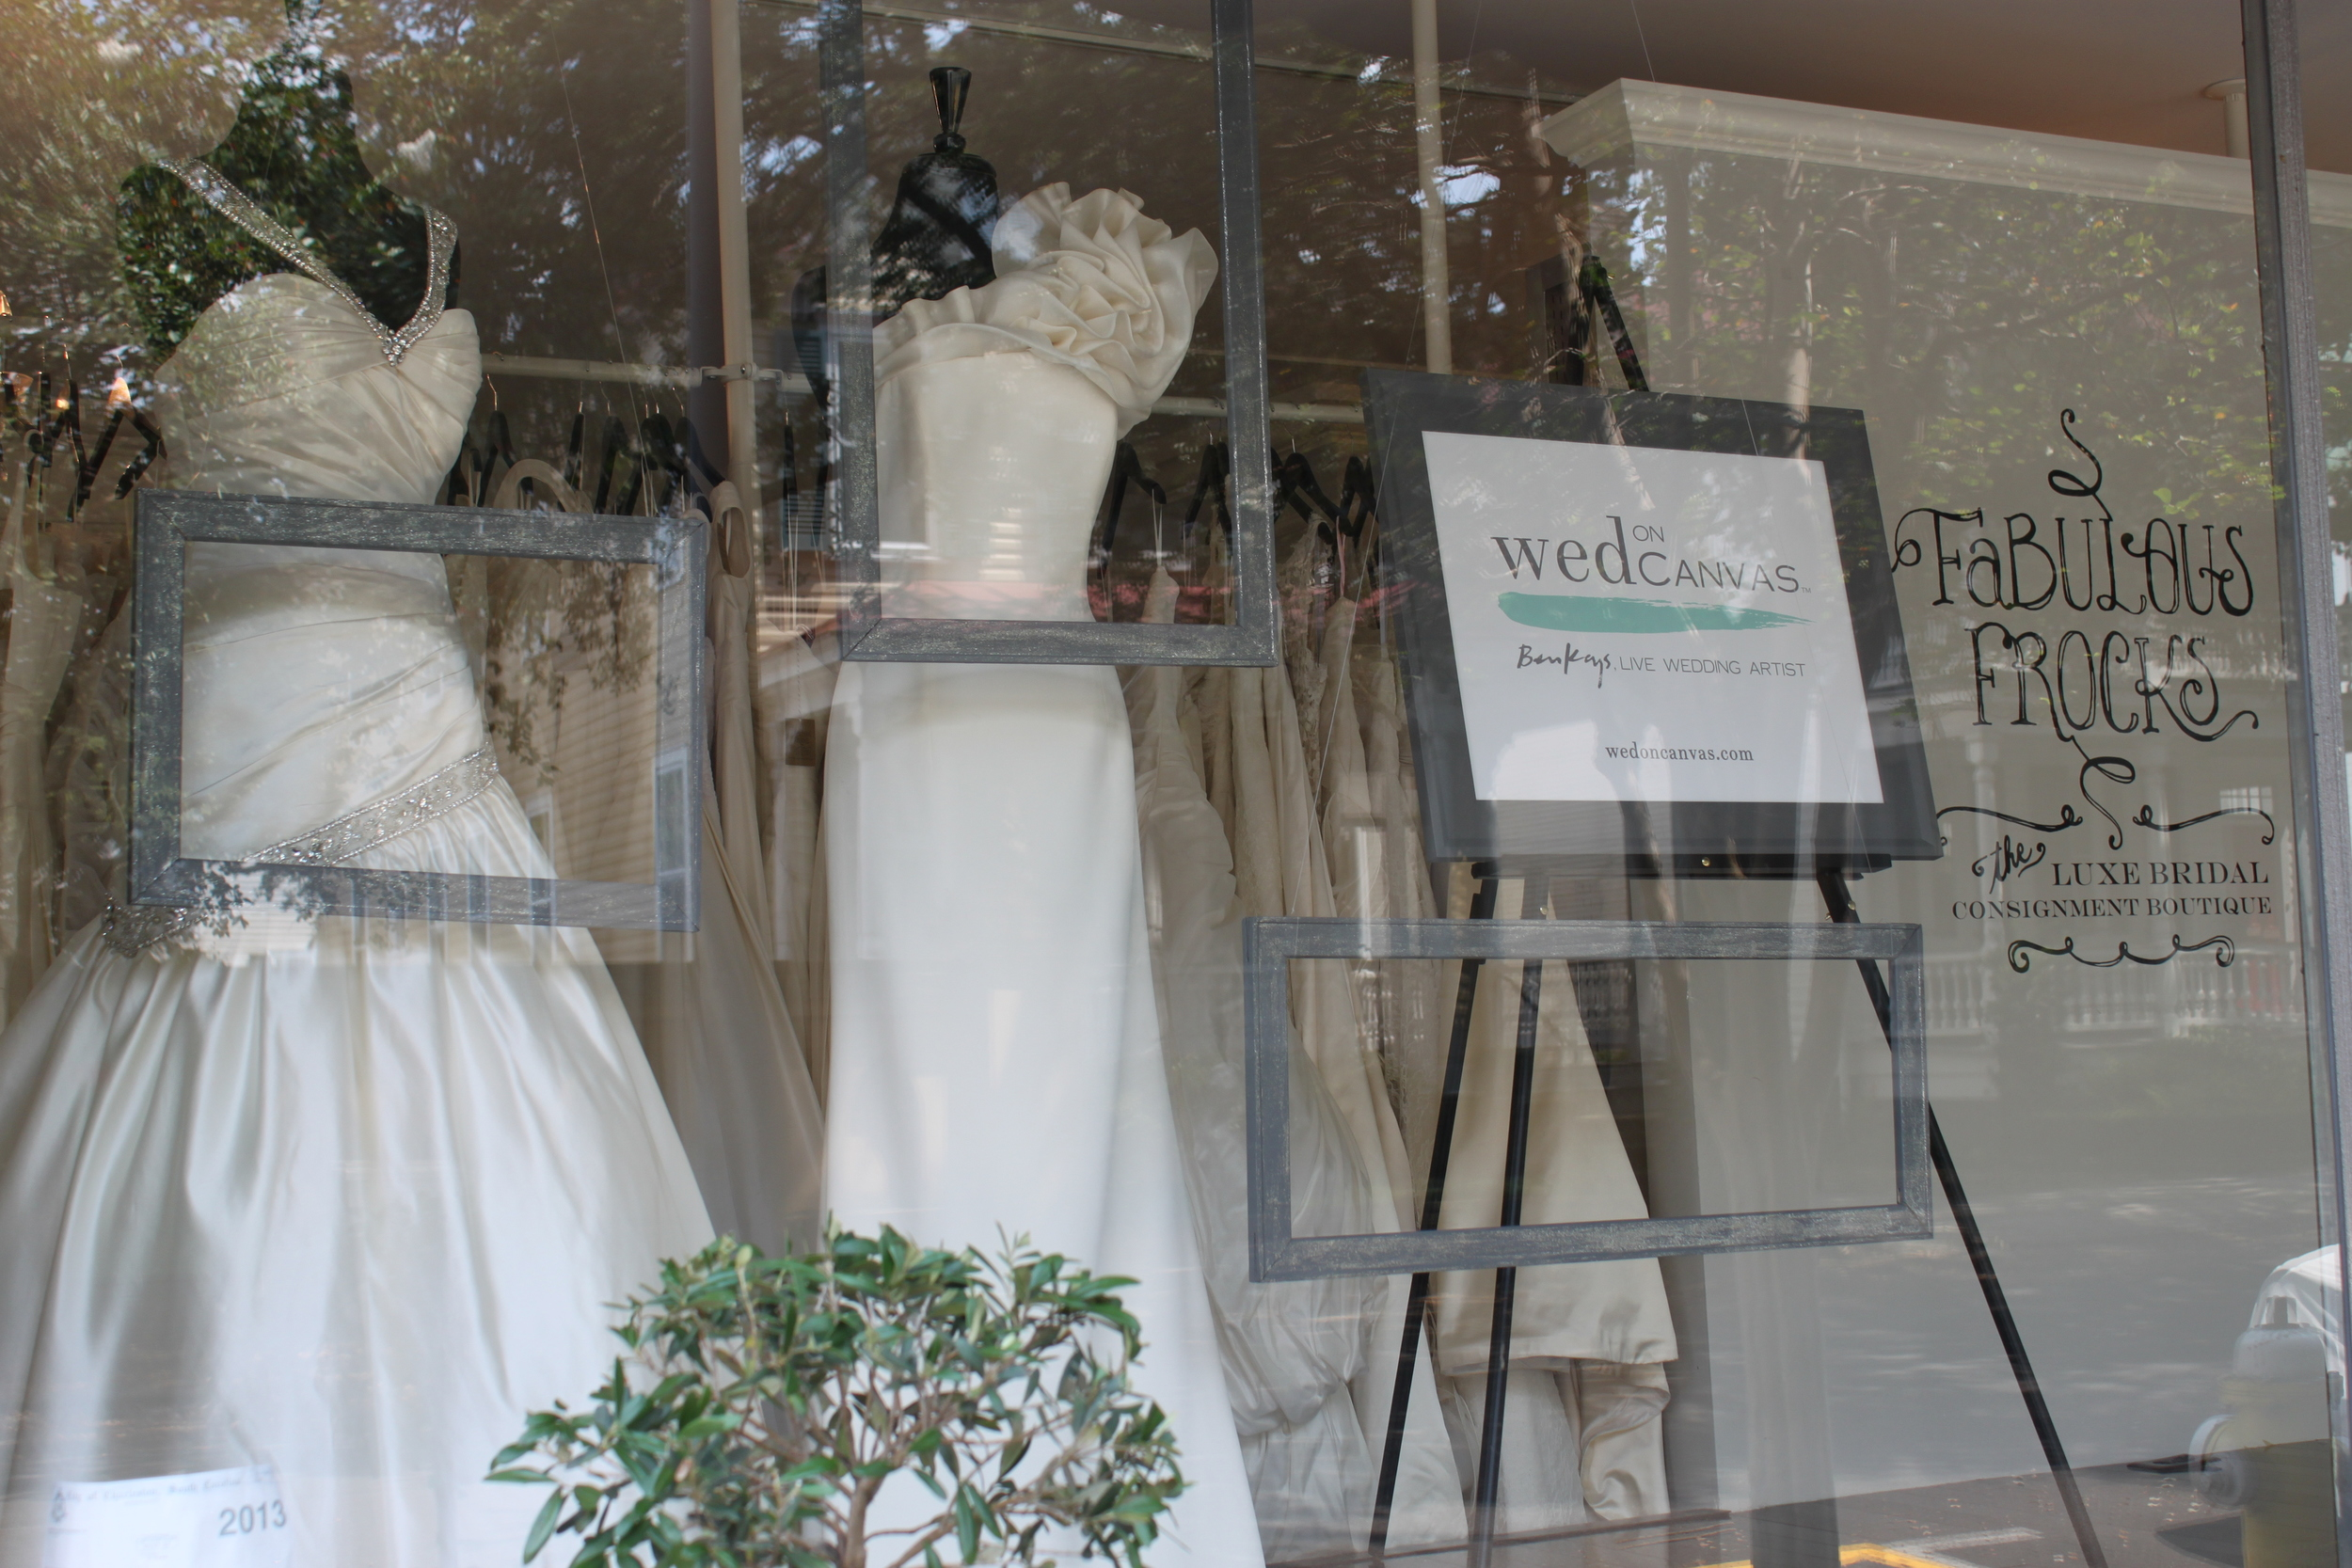 Wed on Canvas window display at Fabulous Frocks.  Ben Keys: Featured Live Wedding Artist  Photo courtesy of Jennifer Keys.